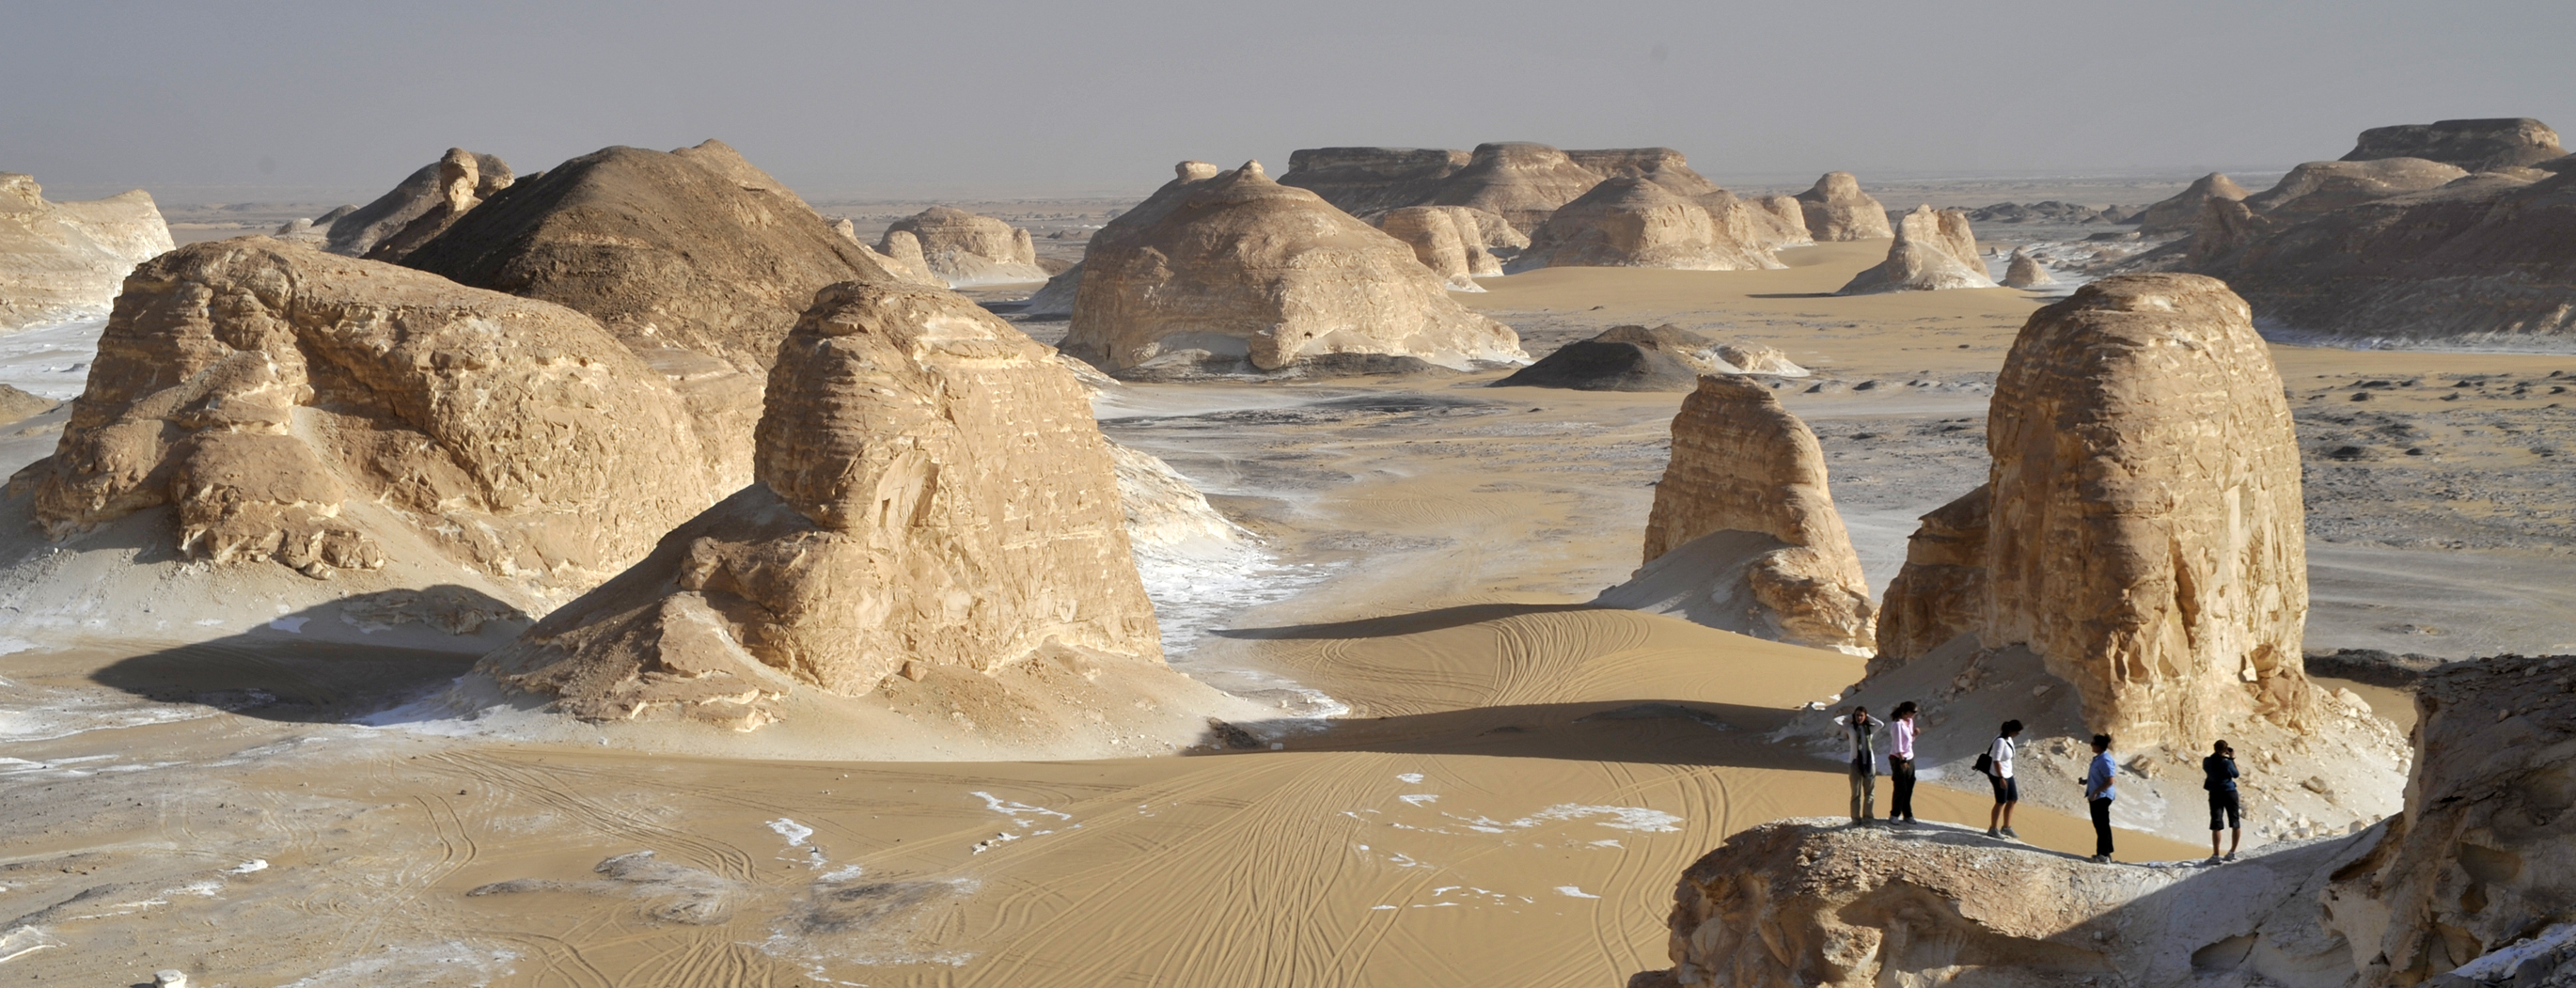 White Desert, Egypt. Departmental Study Abroad Program. Photo by Prof. Braswell